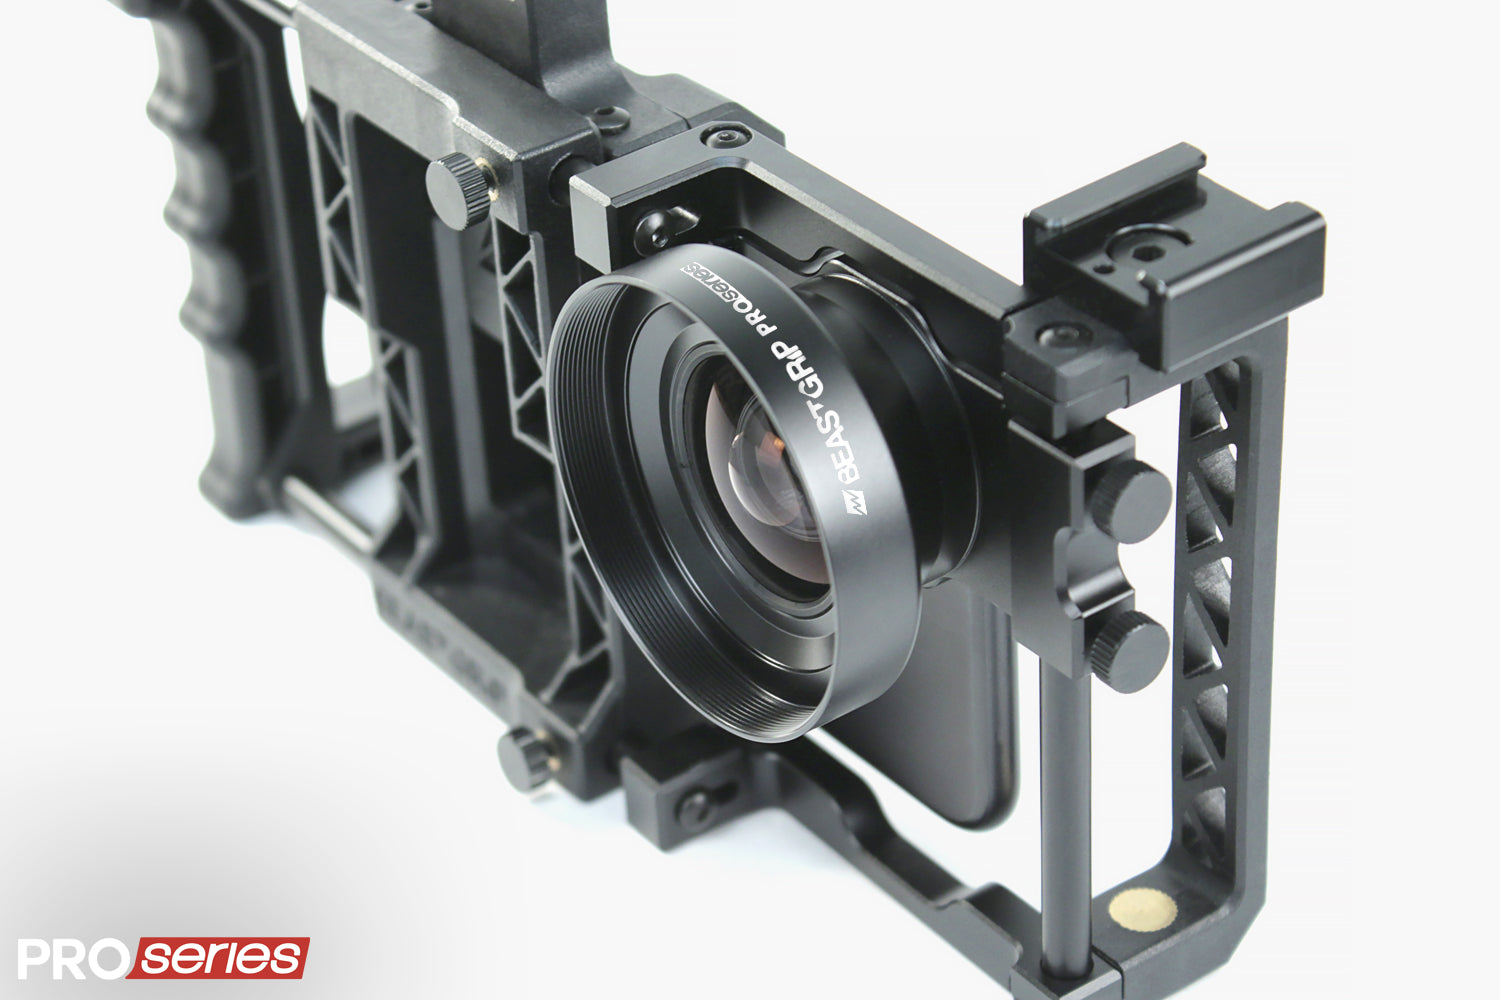 Beastgrip Pro Series 0.6x wide angle lens